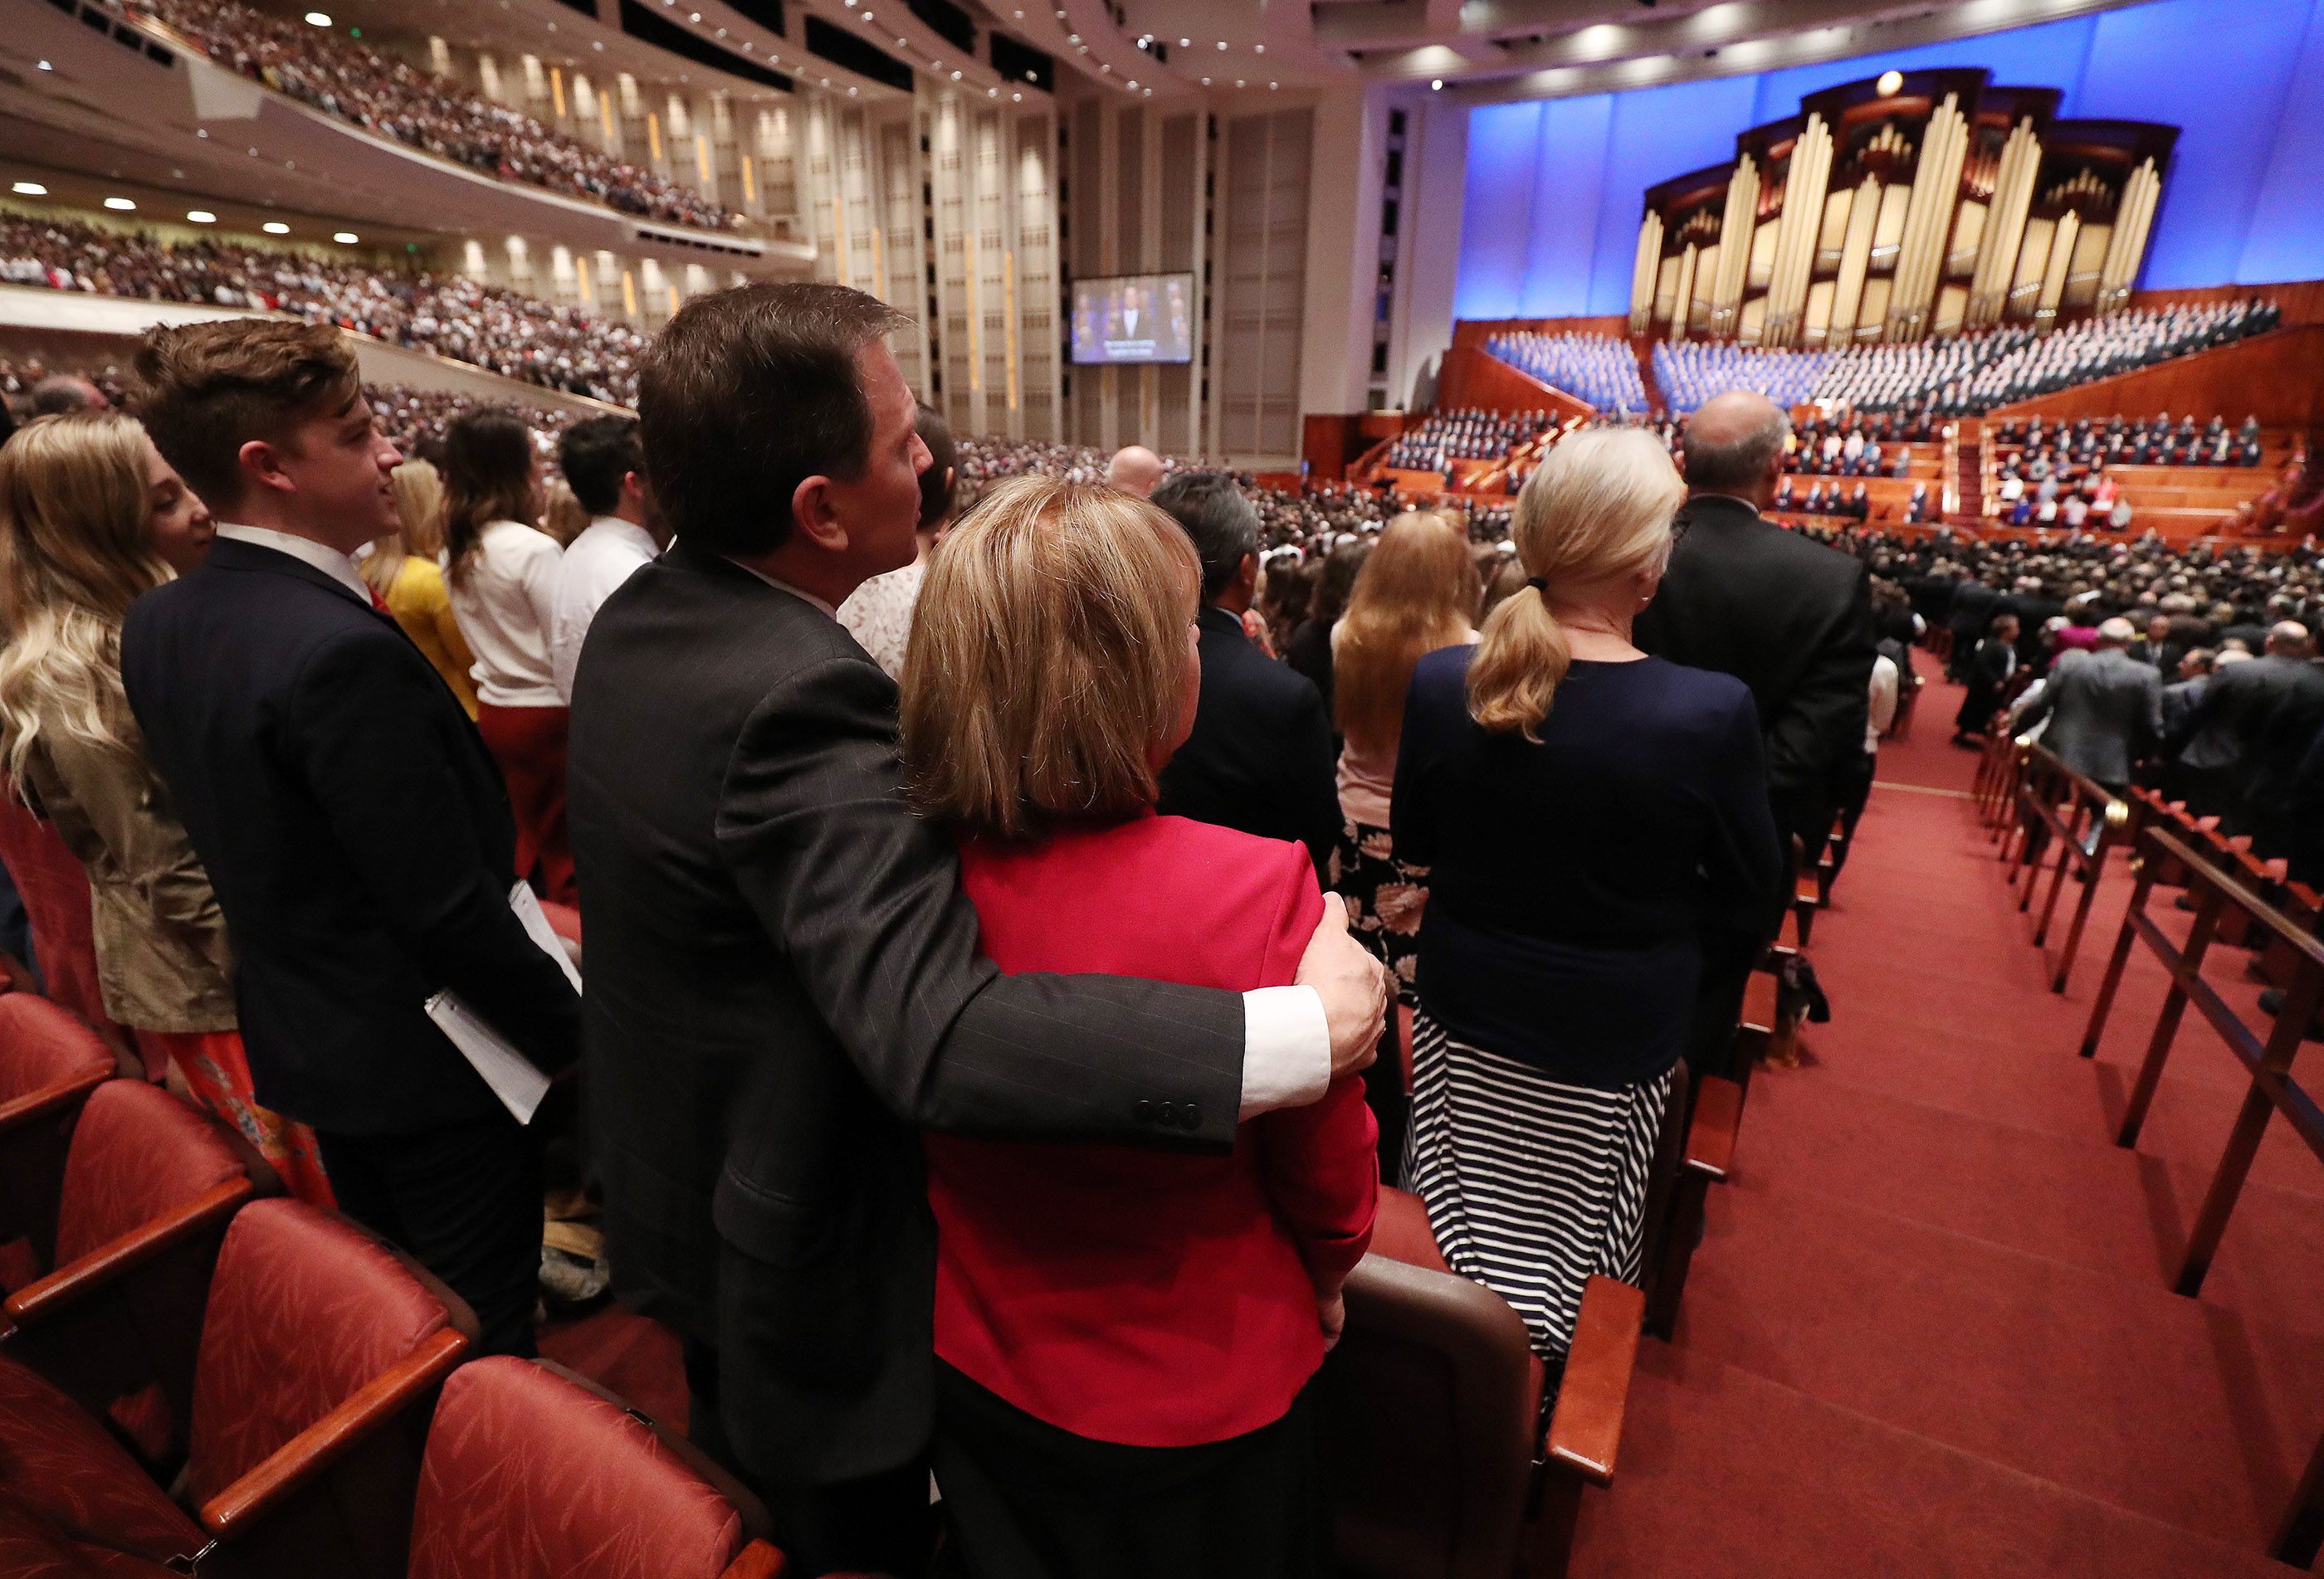 Attendees sing a congregational hymn during the 189th Annual General Conference of The Church of Jesus Christ of Latter-day Saints in Salt Lake City on Saturday, April 6, 2019.